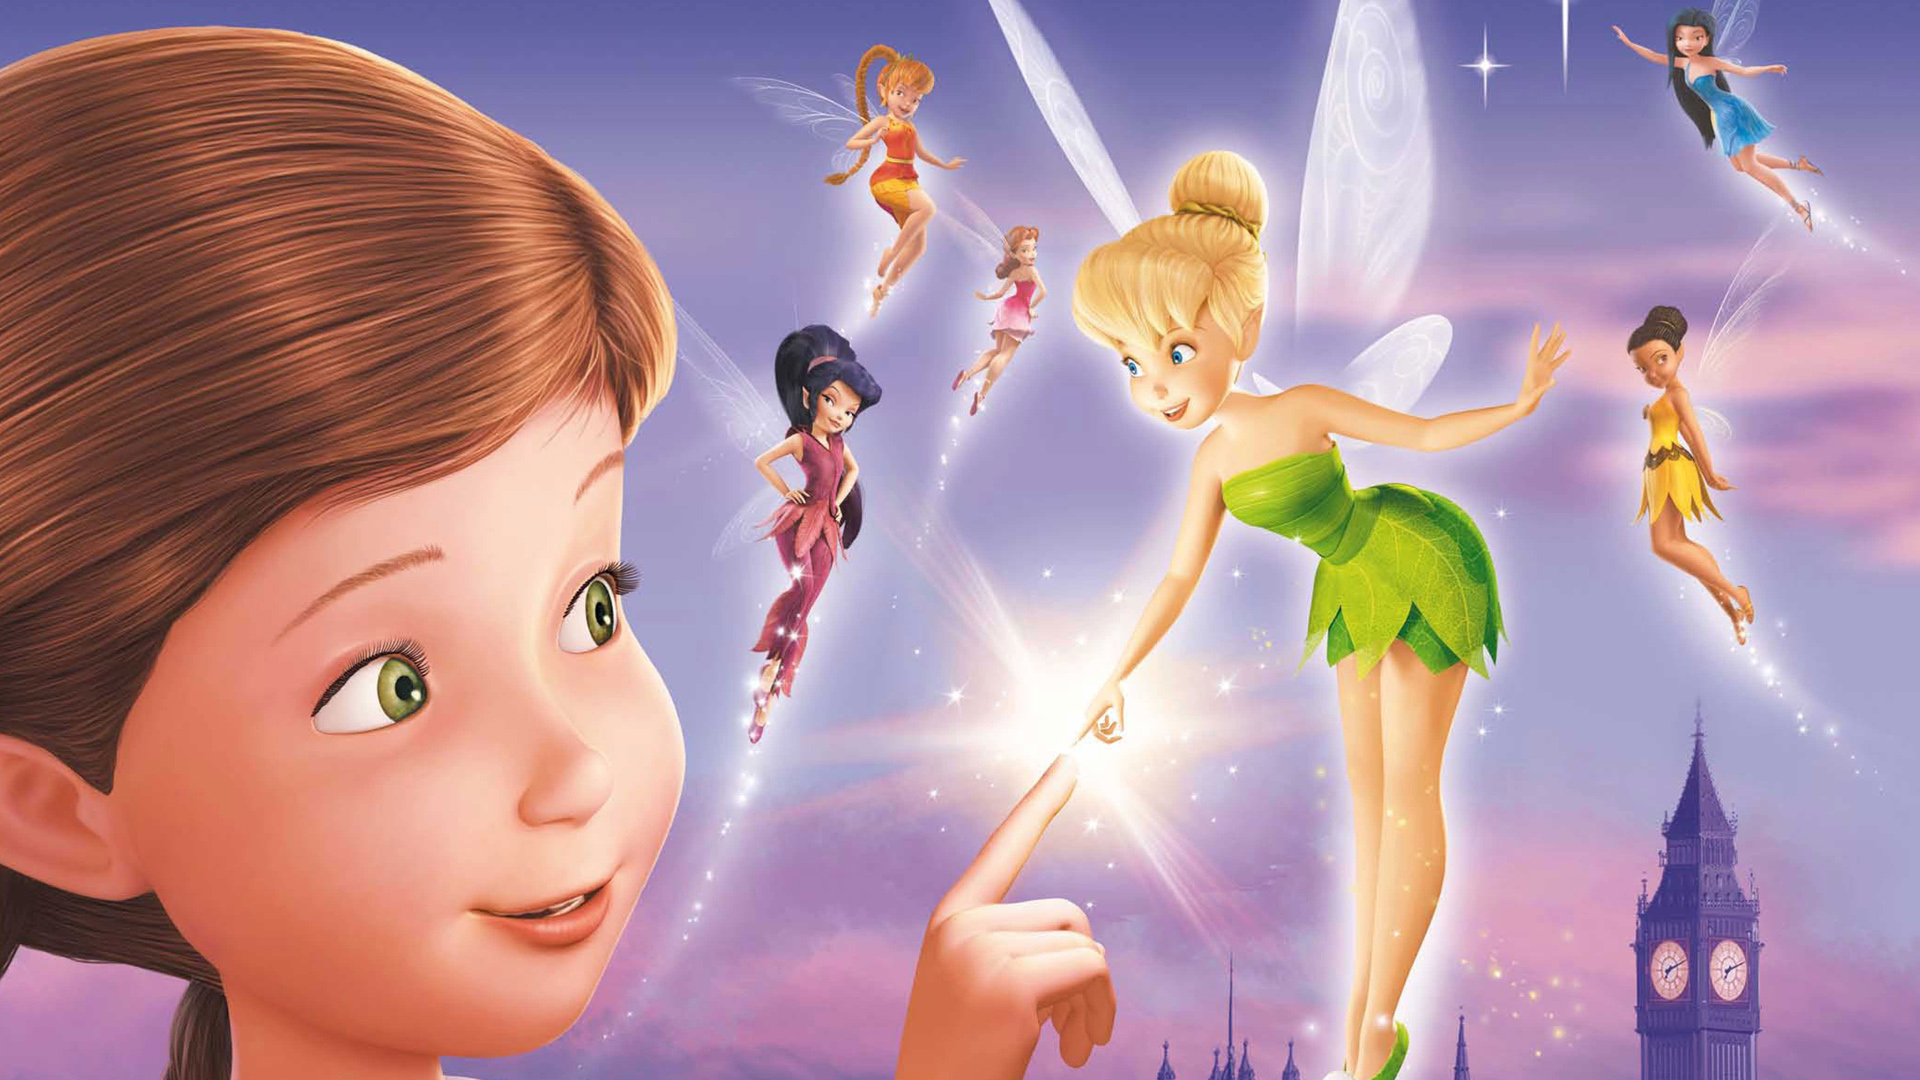 Movie Review - Tinker Bell & The Great Fairy Rescue (Mini Review)